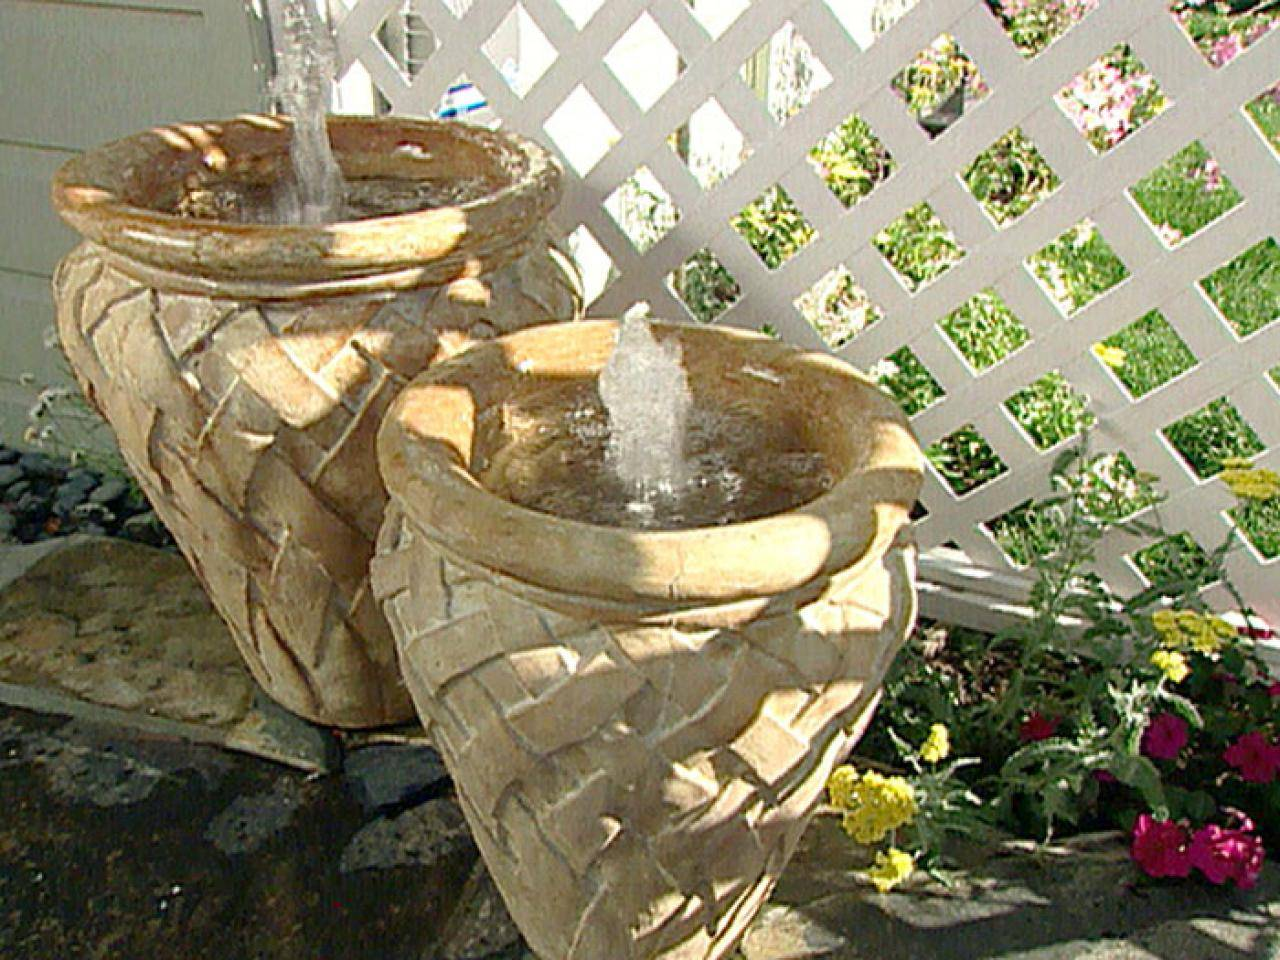 Terra cotta fountain how to build menards youtube - Hgpg Water Feature Pot Fountains These